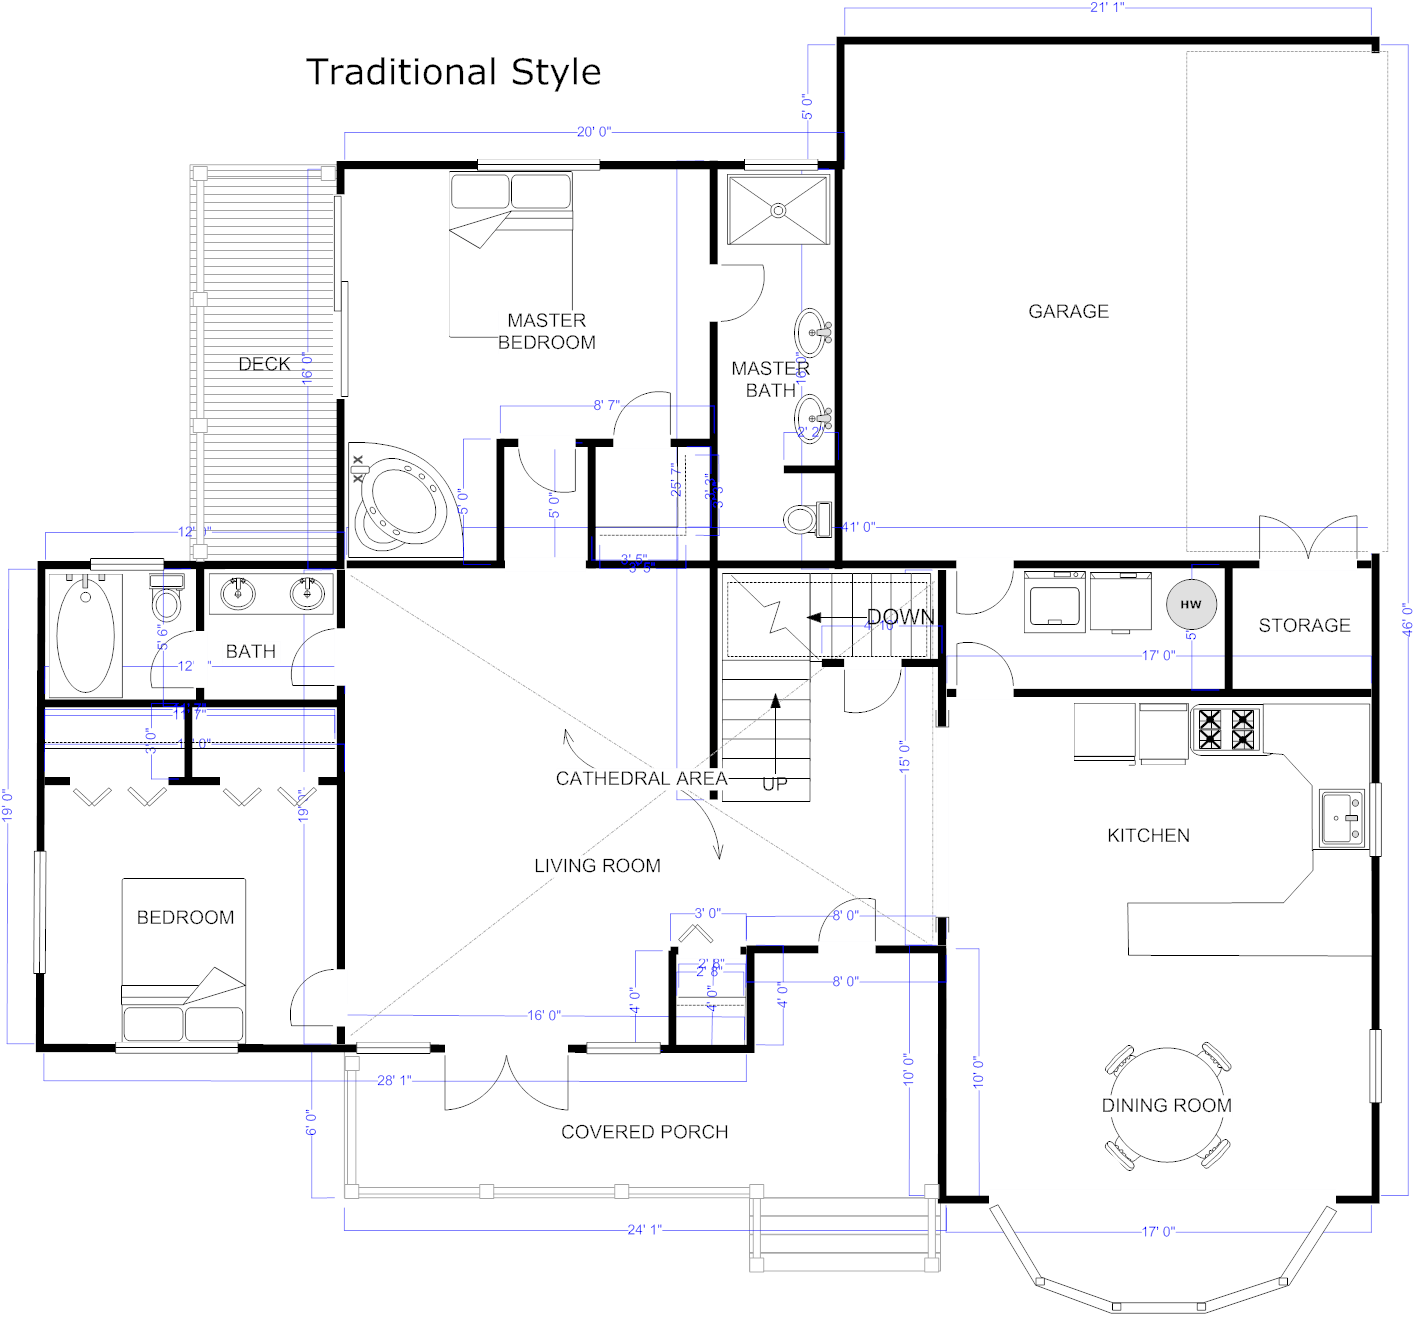 House Design Example Bn 1510011072 Best 3d Floor Plan App For Ipad Your